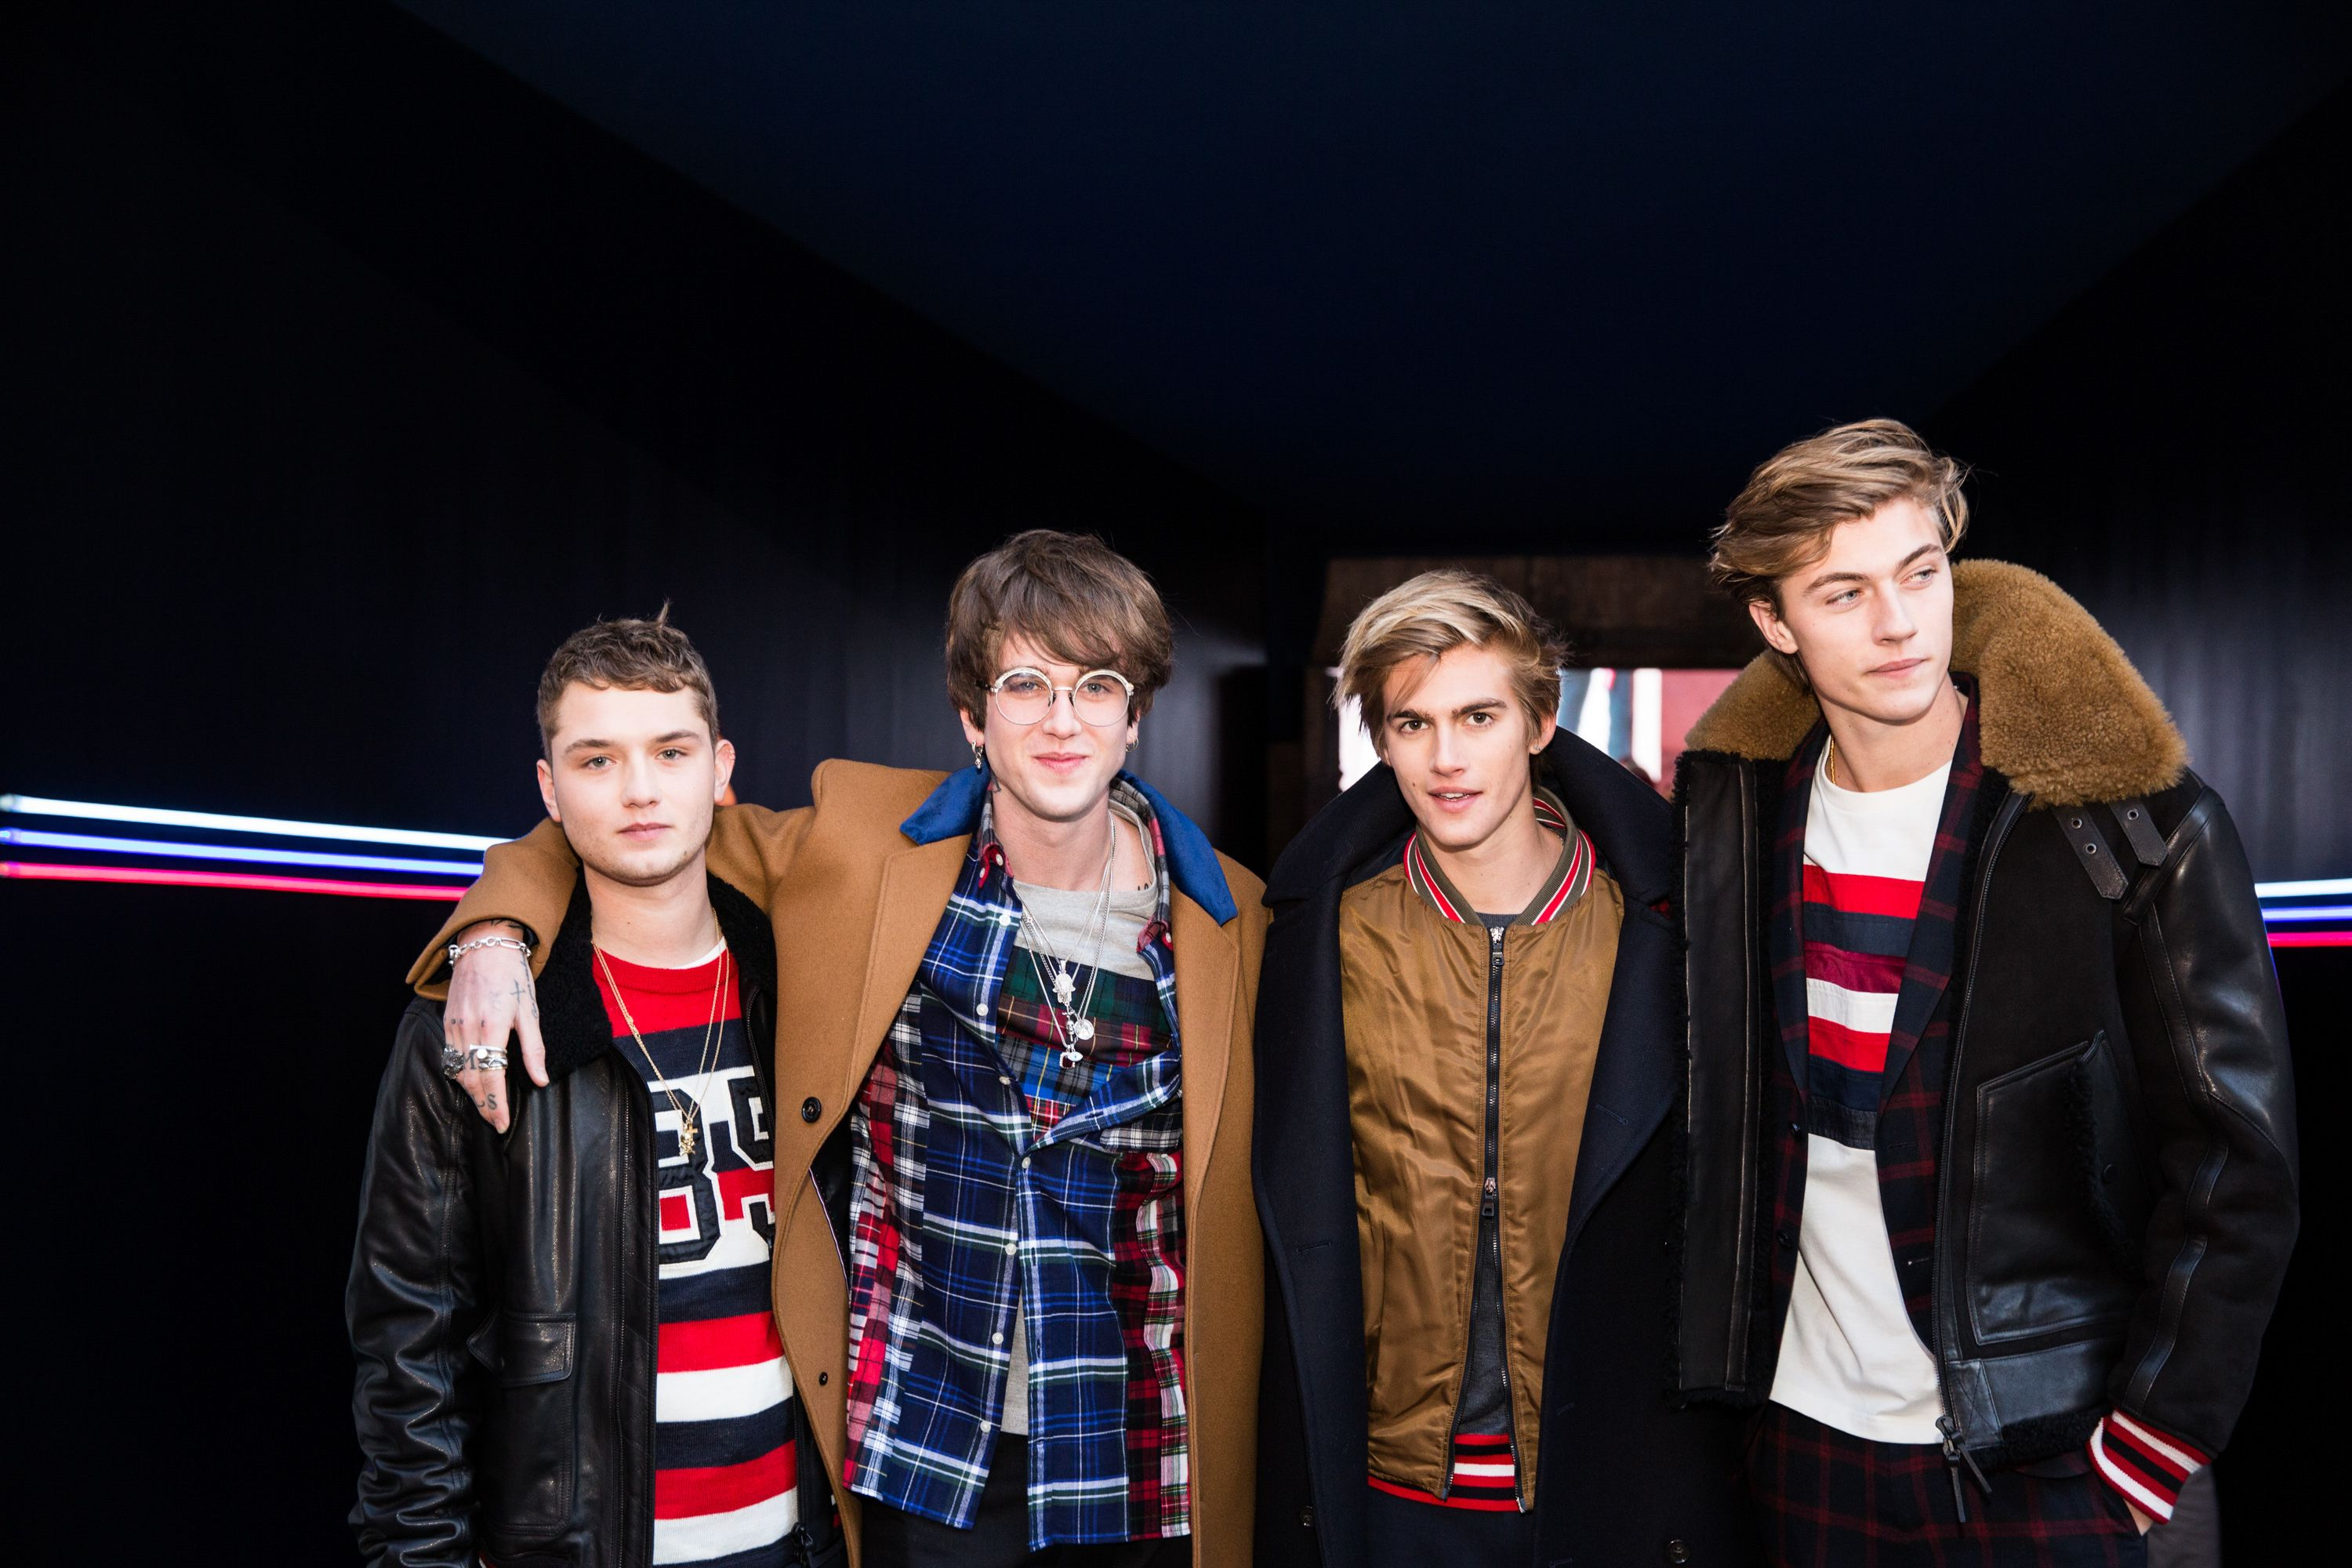 Highlights from Tommy Hilfiger PITTI Florence with Raff